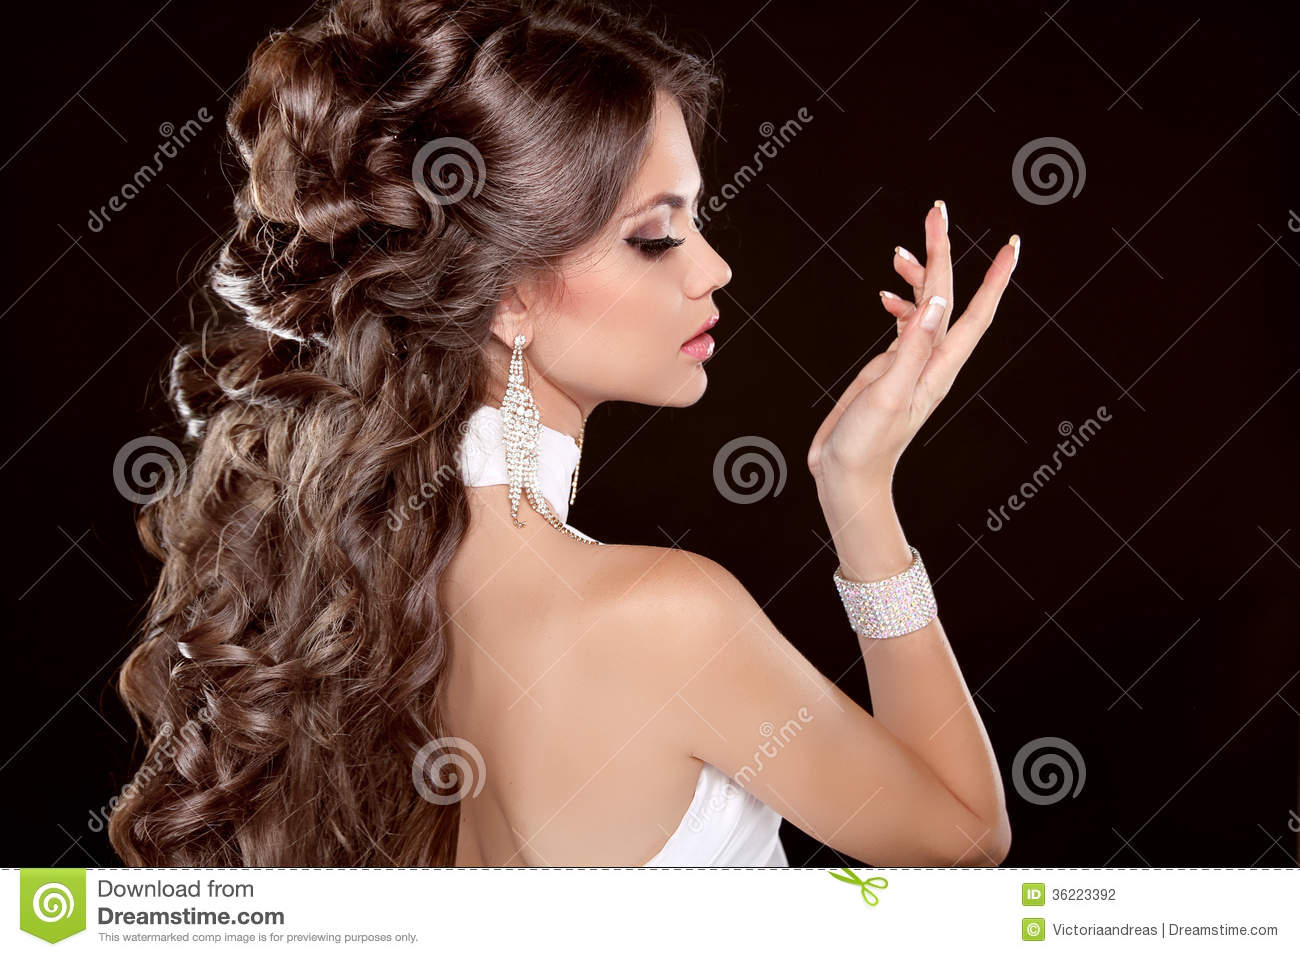 Hairstyle. Long Hair. Glamour Fashion Woman Portrait Of